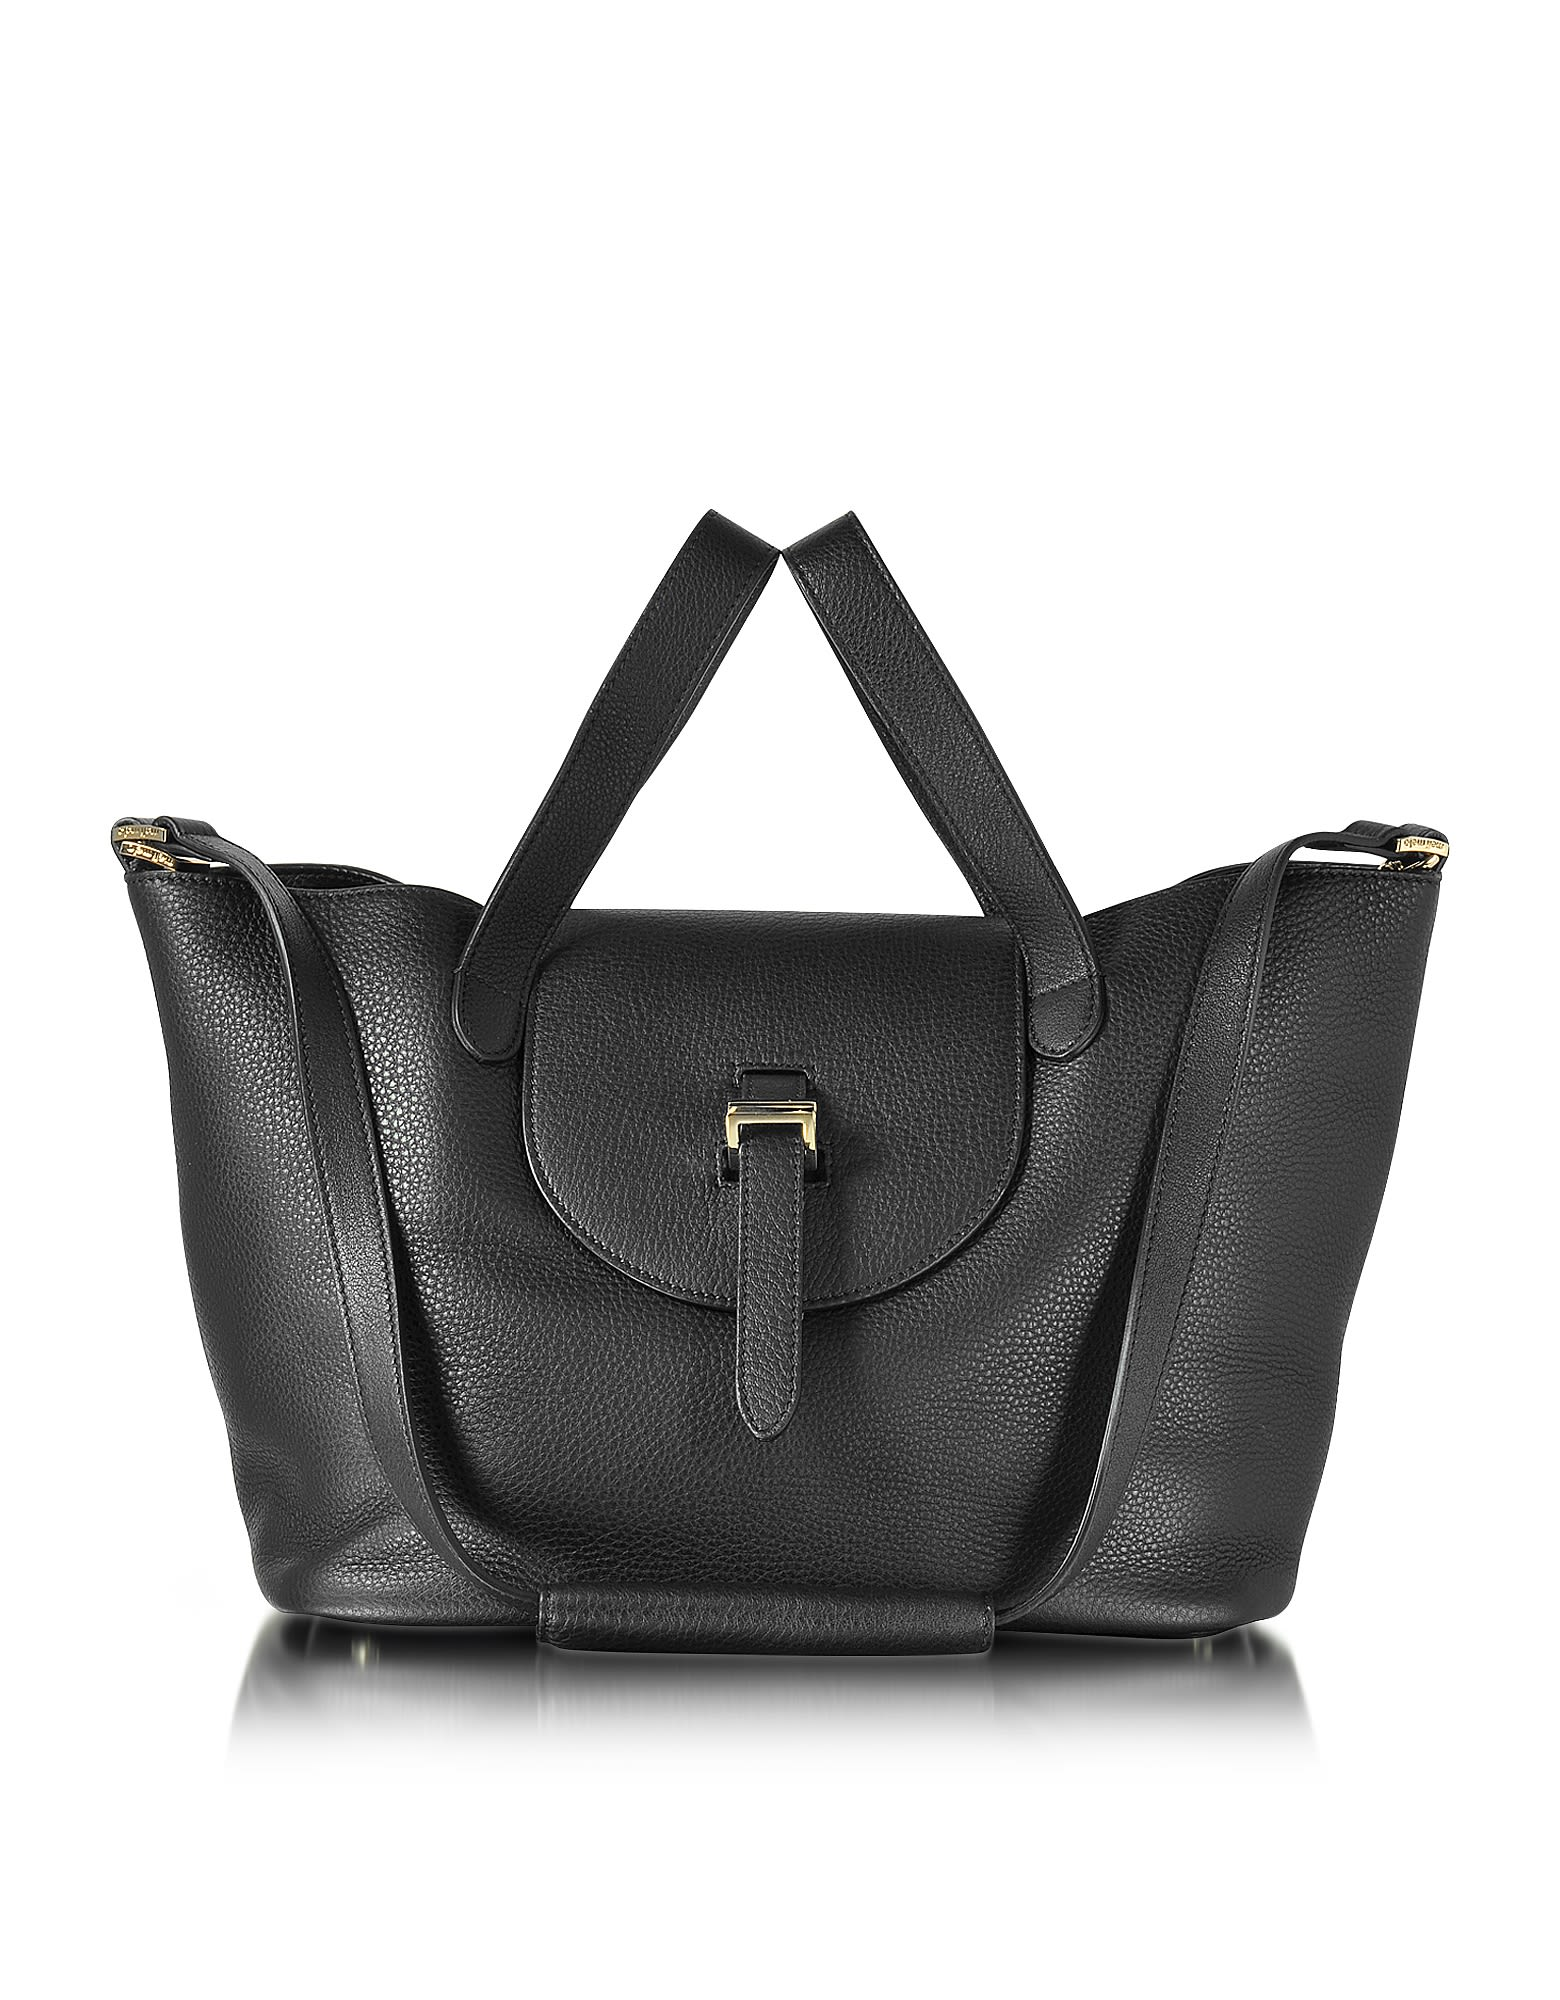 Meli Melo BLACK LEATHER THELA MEDIUM TOTE BAG